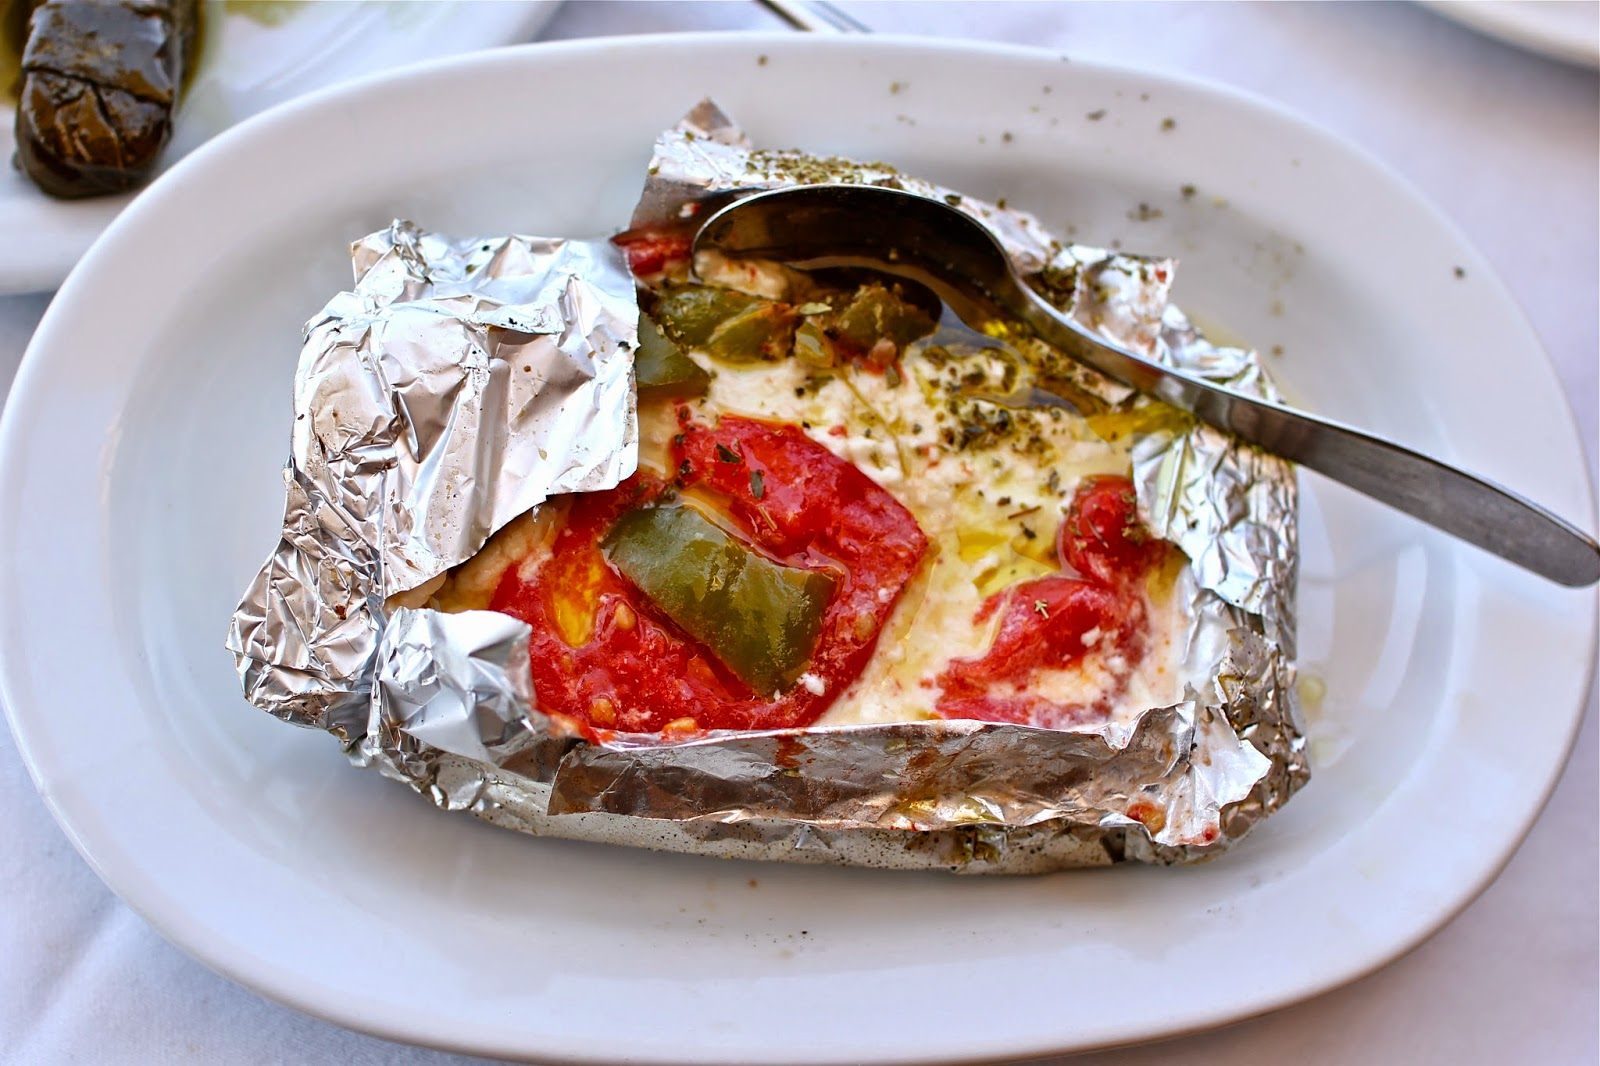 Baked feta | My 5 favorite gluten-free dishes in Greece